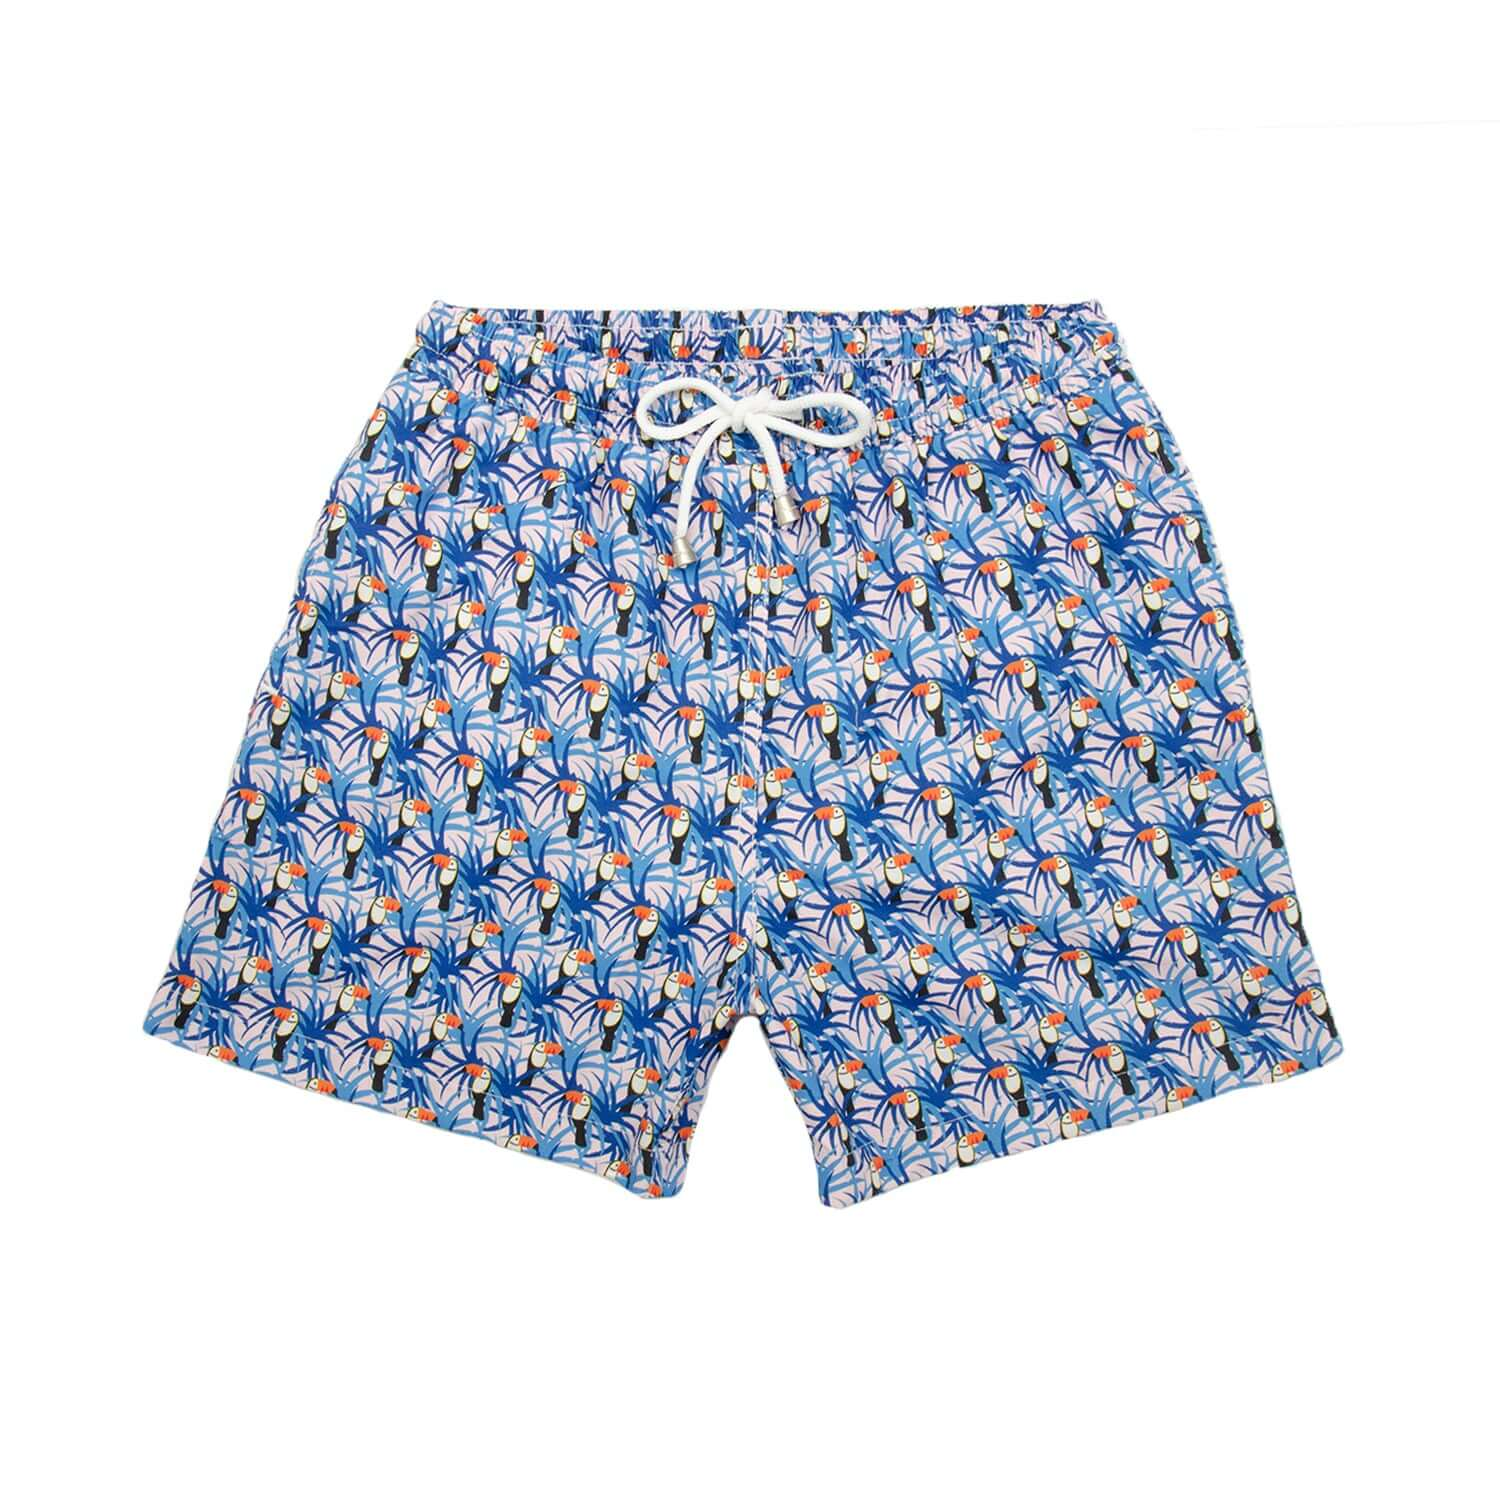 TUCAN PINK KIDS - Clorofila Sea Wear